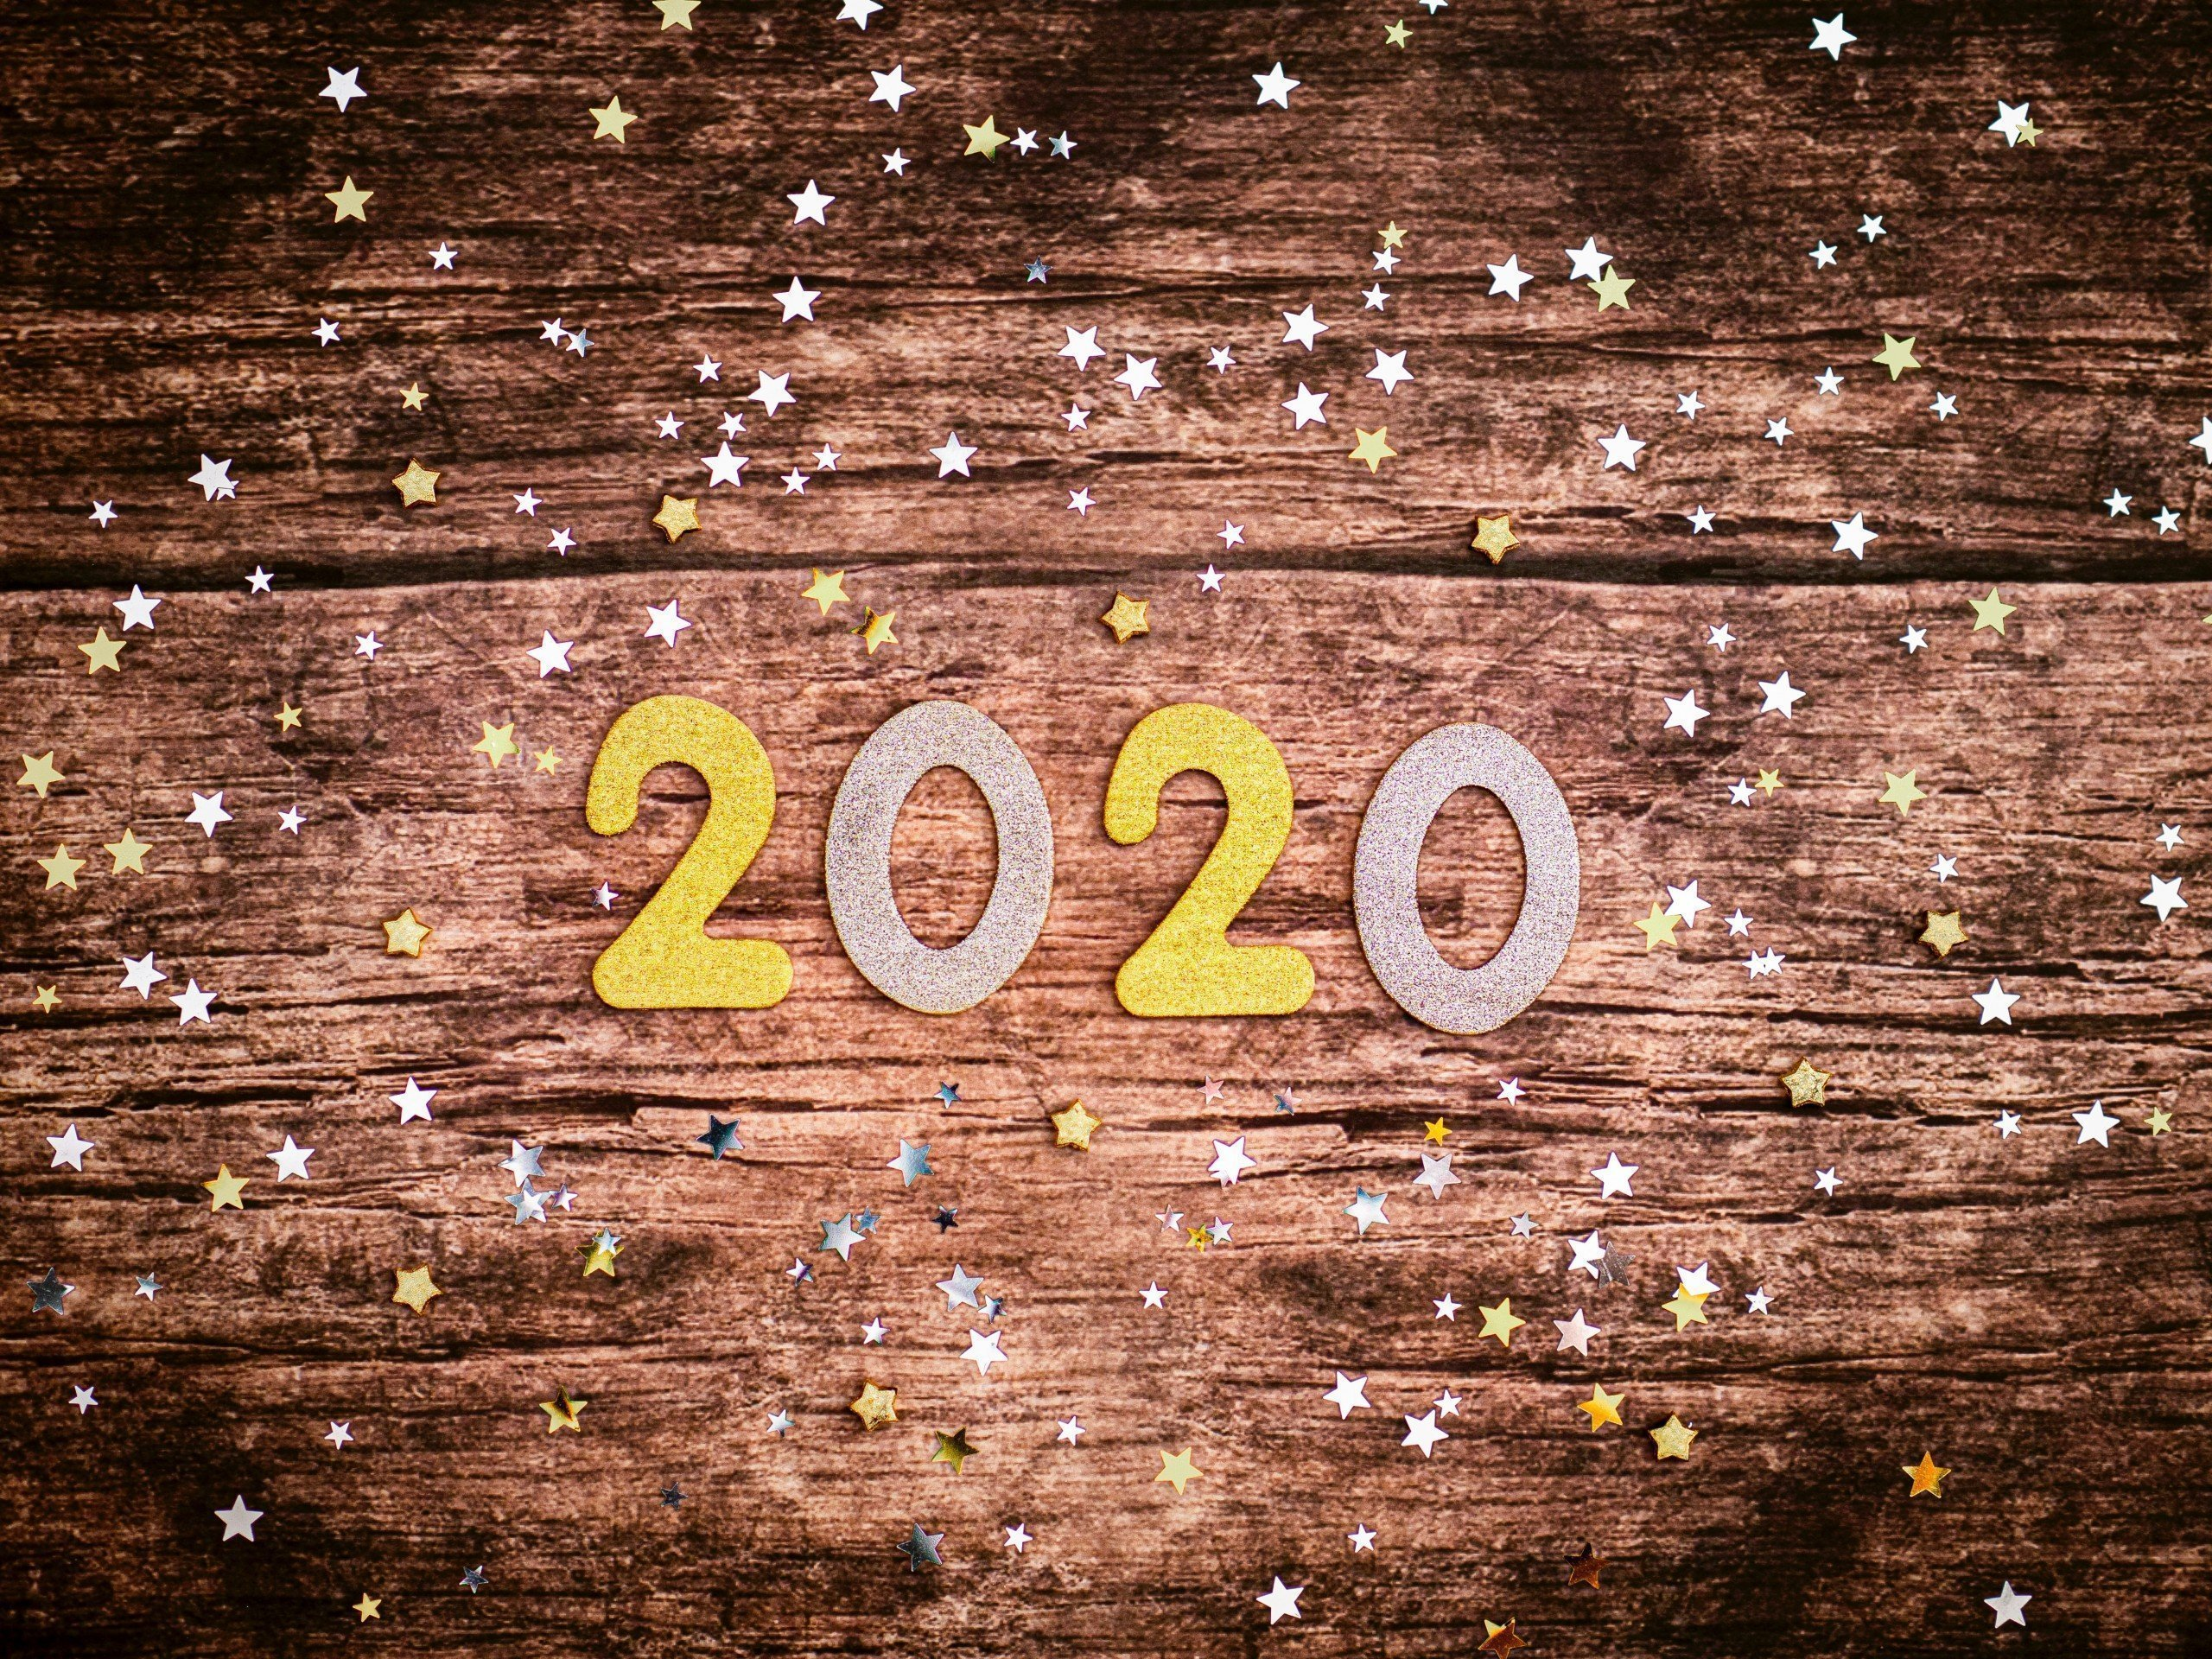 New years resolution ideas 2020-new year resolutions-in-2020,how-to-achieve-new-years-resolution-2020